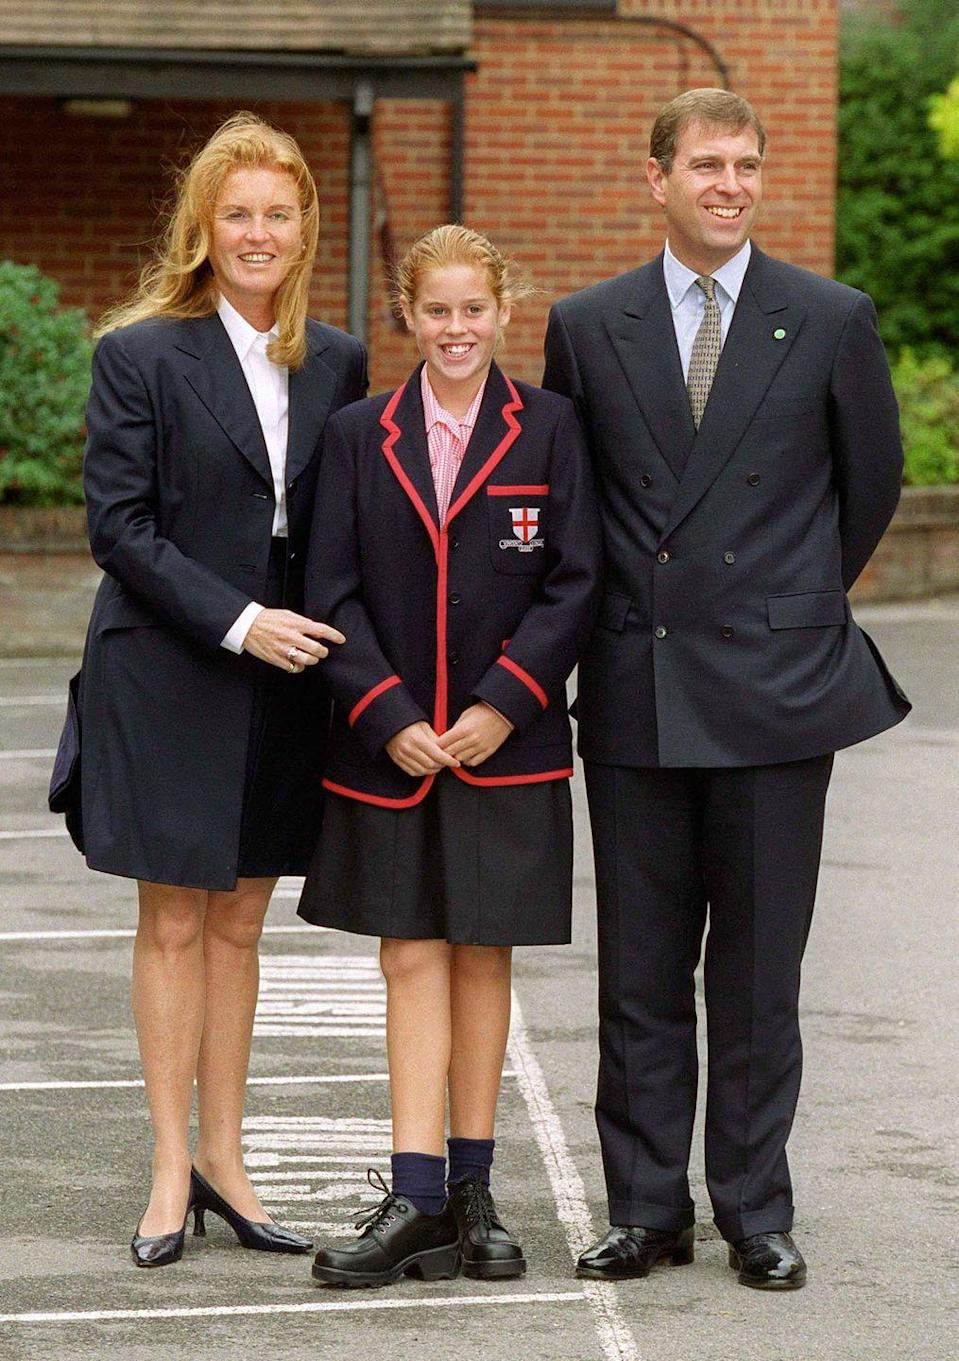 <p>Princess Beatrice poses with her parents on her first day at St. George's School in Ascot, England.</p>